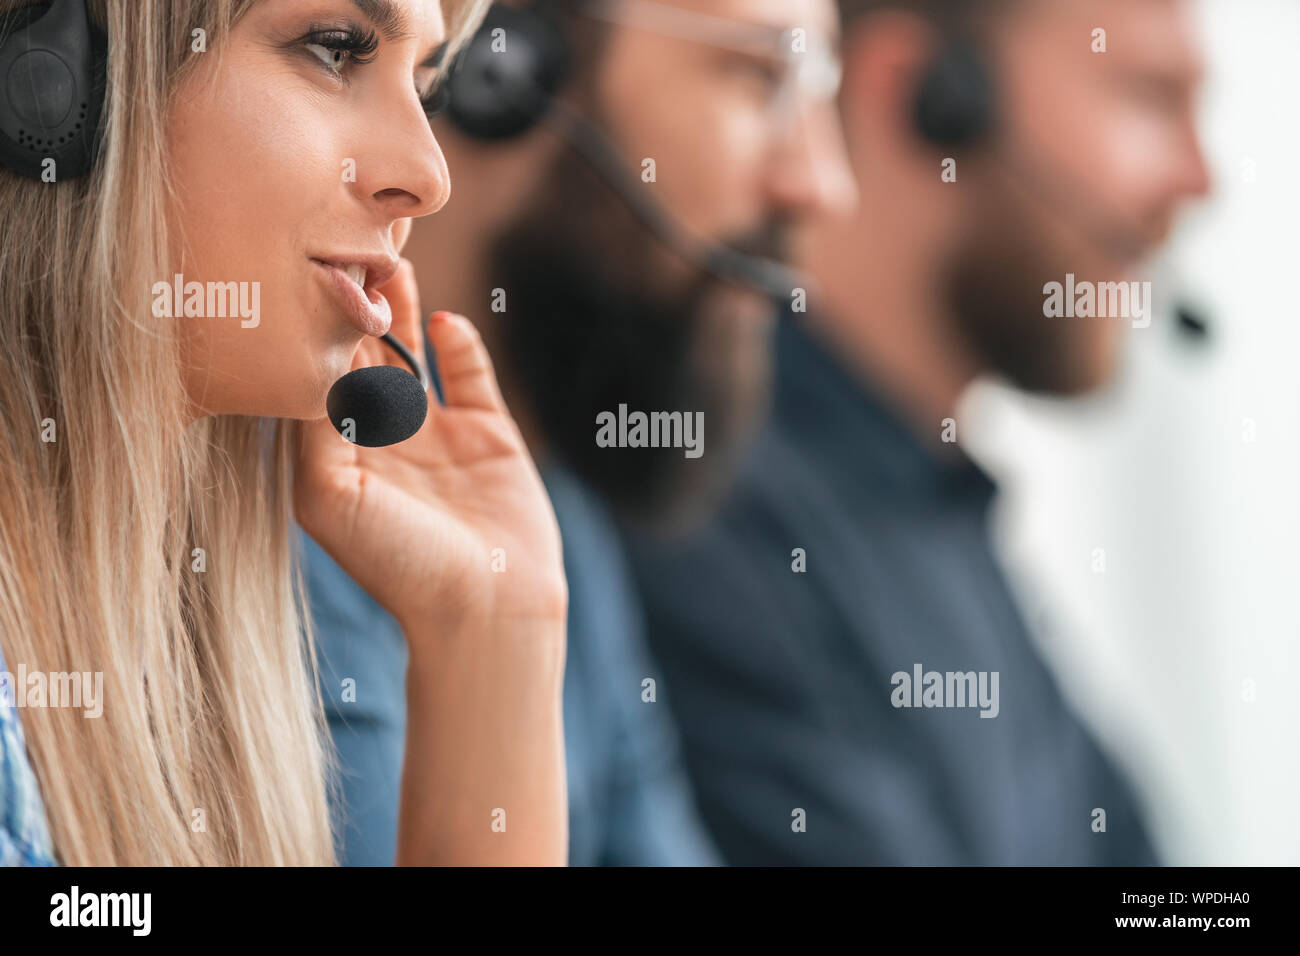 close up. background image of call center employees Stock Photo